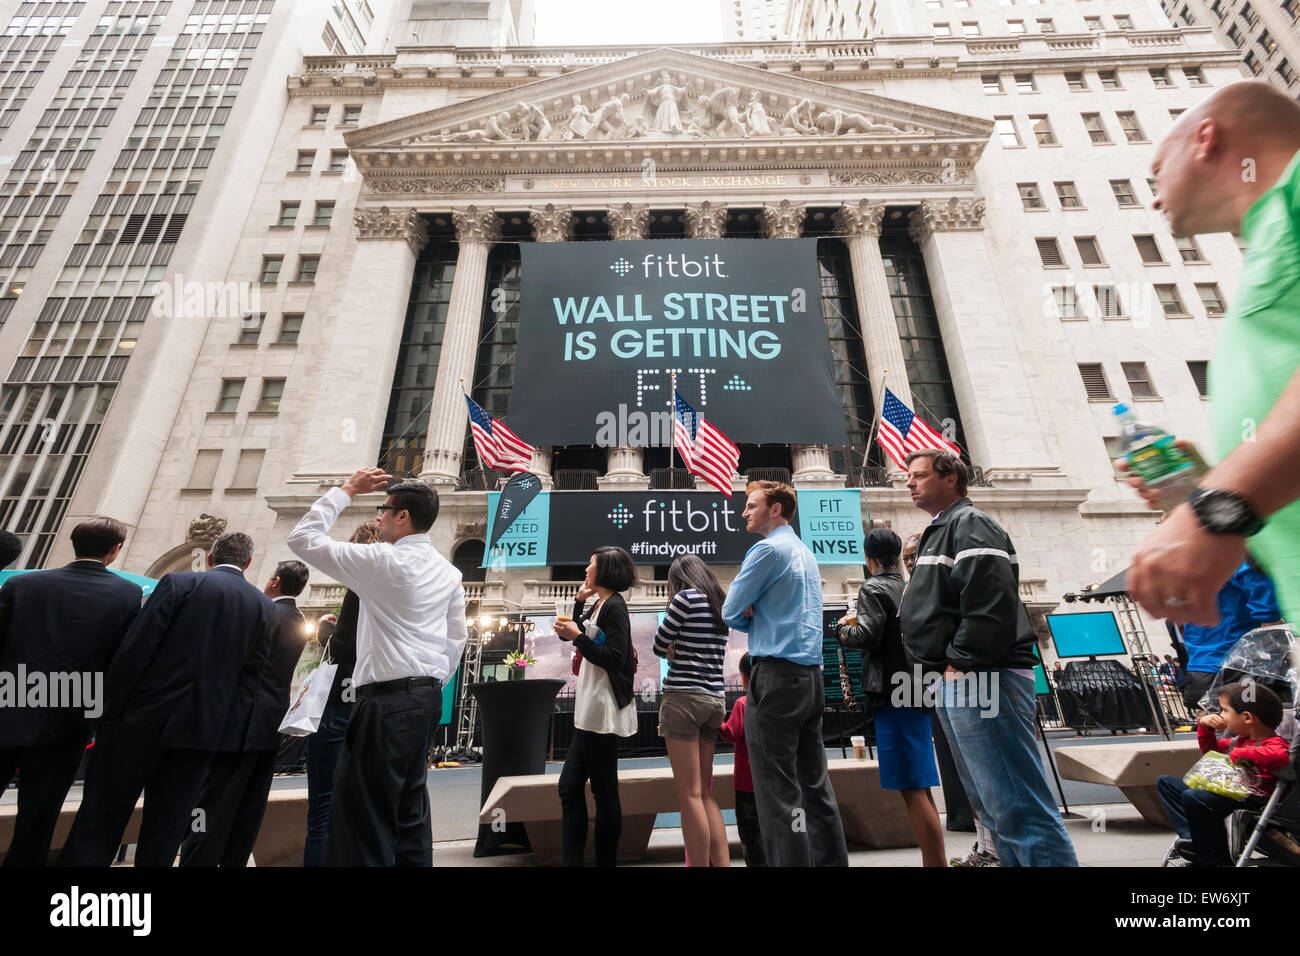 New York, USA. 18th June, 2015. People line up for free t-shirts outside the New York Stock Exchange decorated for - Stock Image